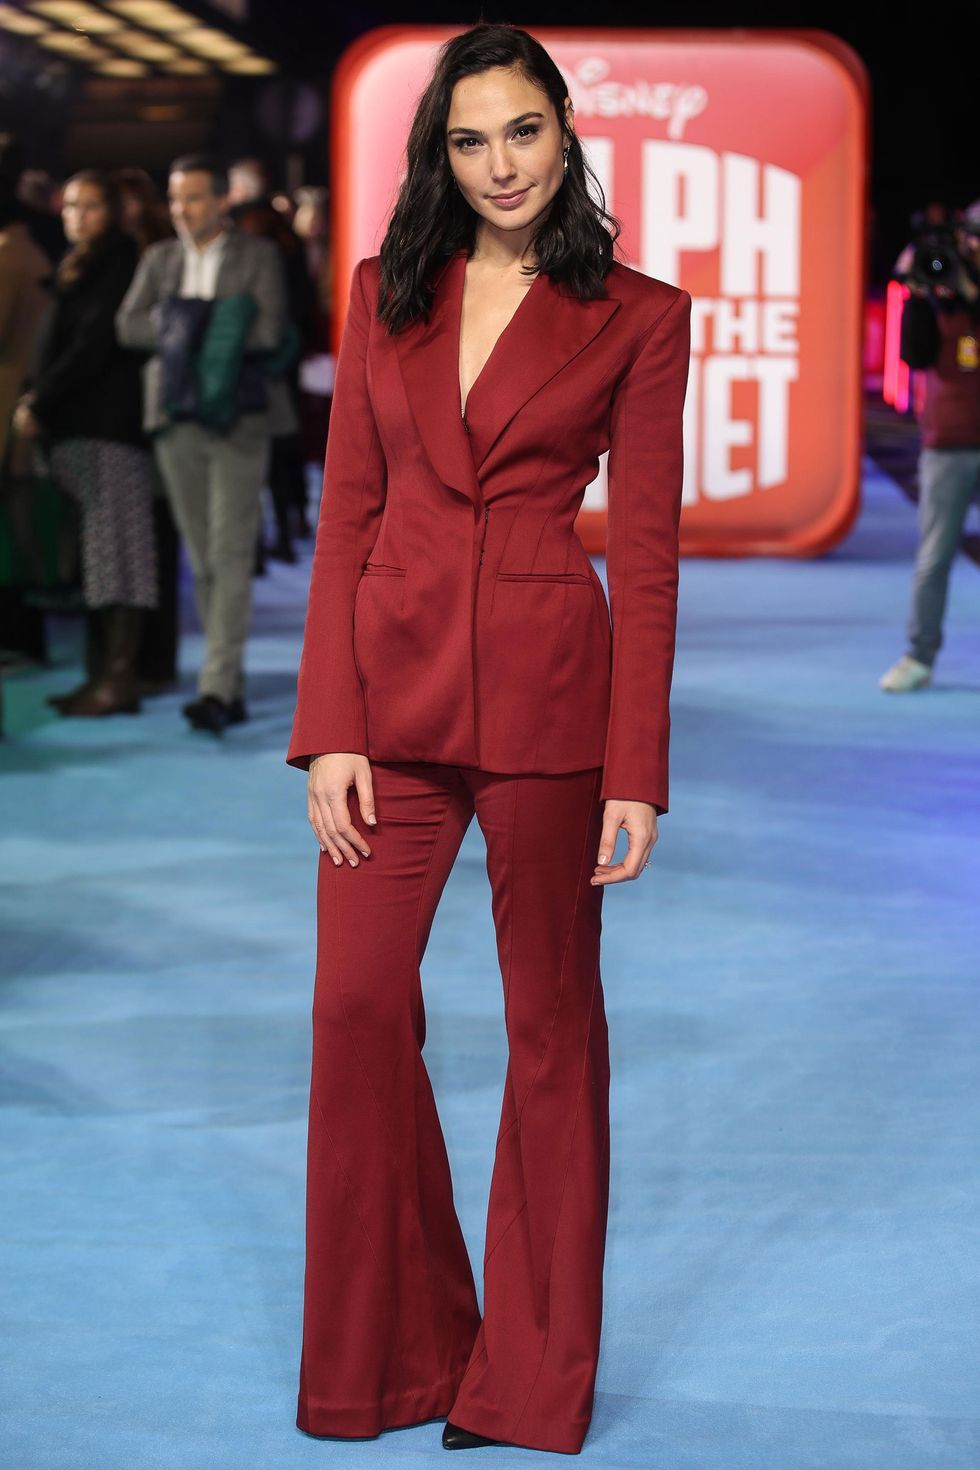 Gal Gadot wearing a red suit